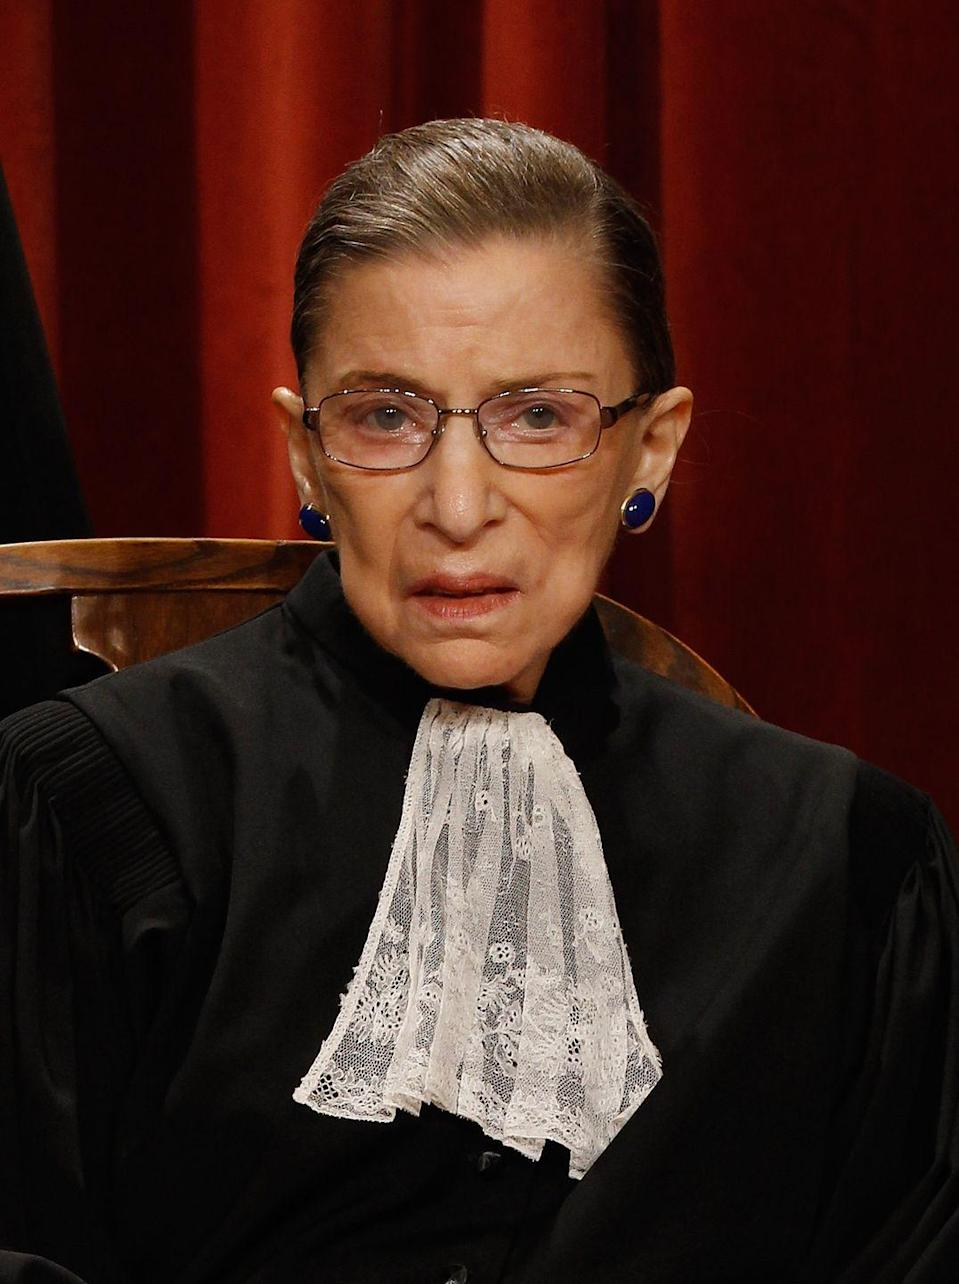 "<p>Ginsburg had to work the day after Martin's death—it was toward the end of the Court's session that year and Ginsburg had an opinion for a <a href=""https://jezebel.com/marty-was-always-my-best-friend-ruth-bader-ginsburgs-l-1738733789"" rel=""nofollow noopener"" target=""_blank"" data-ylk=""slk:landmark case"" class=""link rapid-noclick-resp"">landmark case</a> in which she made the argument that Christian groups at public universities <a href=""https://www.nytimes.com/2010/06/29/us/29court.html"" rel=""nofollow noopener"" target=""_blank"" data-ylk=""slk:couldn't prevent"" class=""link rapid-noclick-resp"">couldn't prevent</a> gay students from attending their meetings, and she decided she couldn't miss the session.</p><p>Their daughter, Jane, said, ""My father would certainly not have wanted her to miss the last days on the bench on account of his death.""</p>"